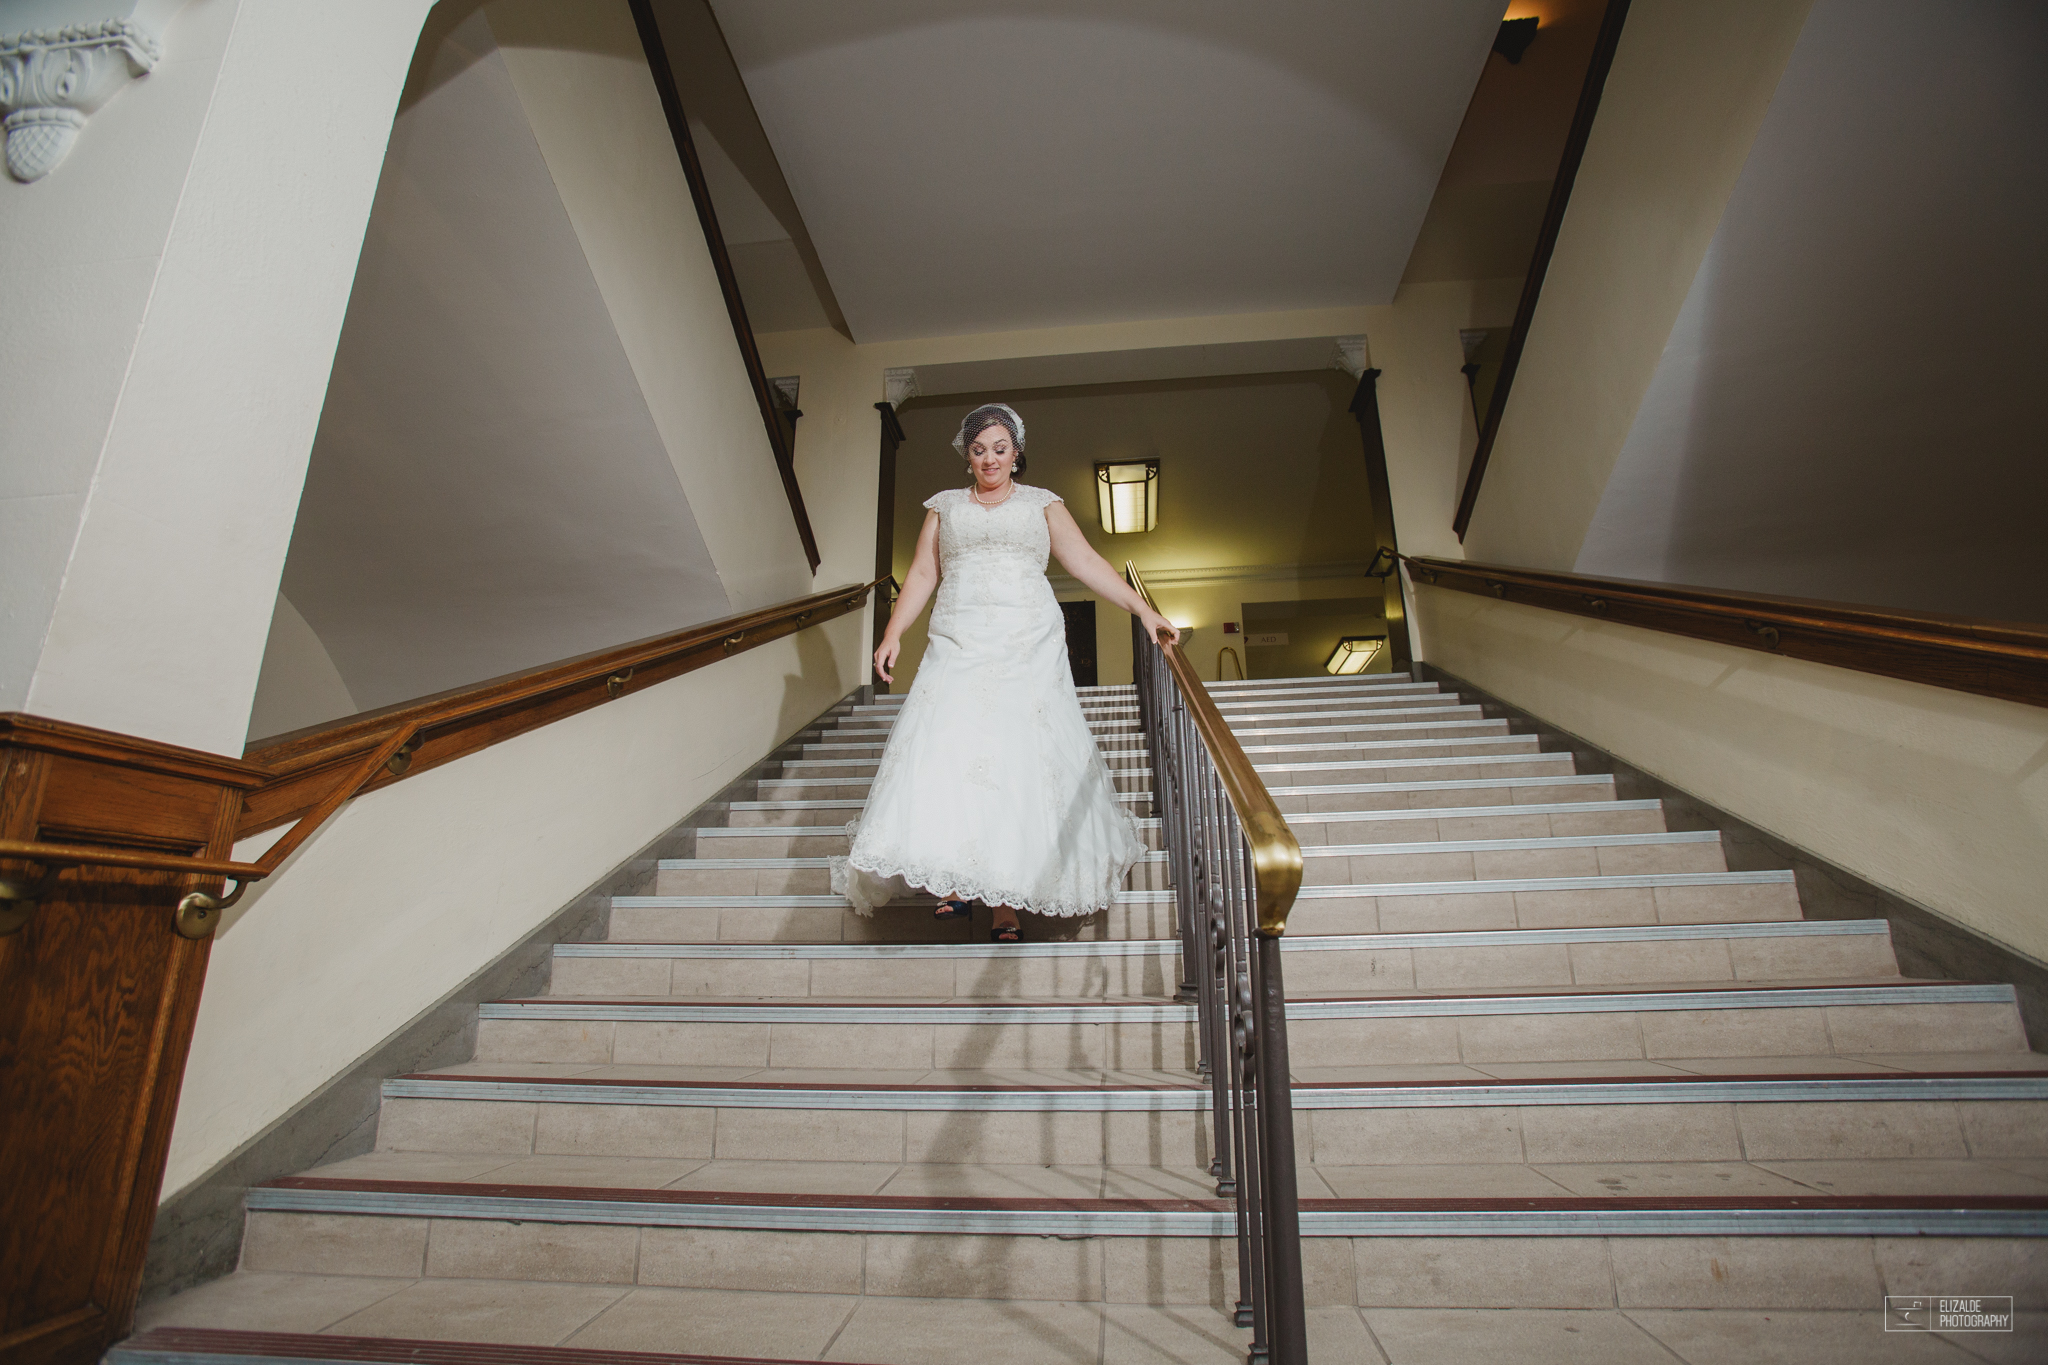 University of Oklahoma_UO_Wedding Photographer_Wedding photography_DFW Wedding Photographer_Elizalde photography_Denton Wedding Photograper  (30 of 100).jpg